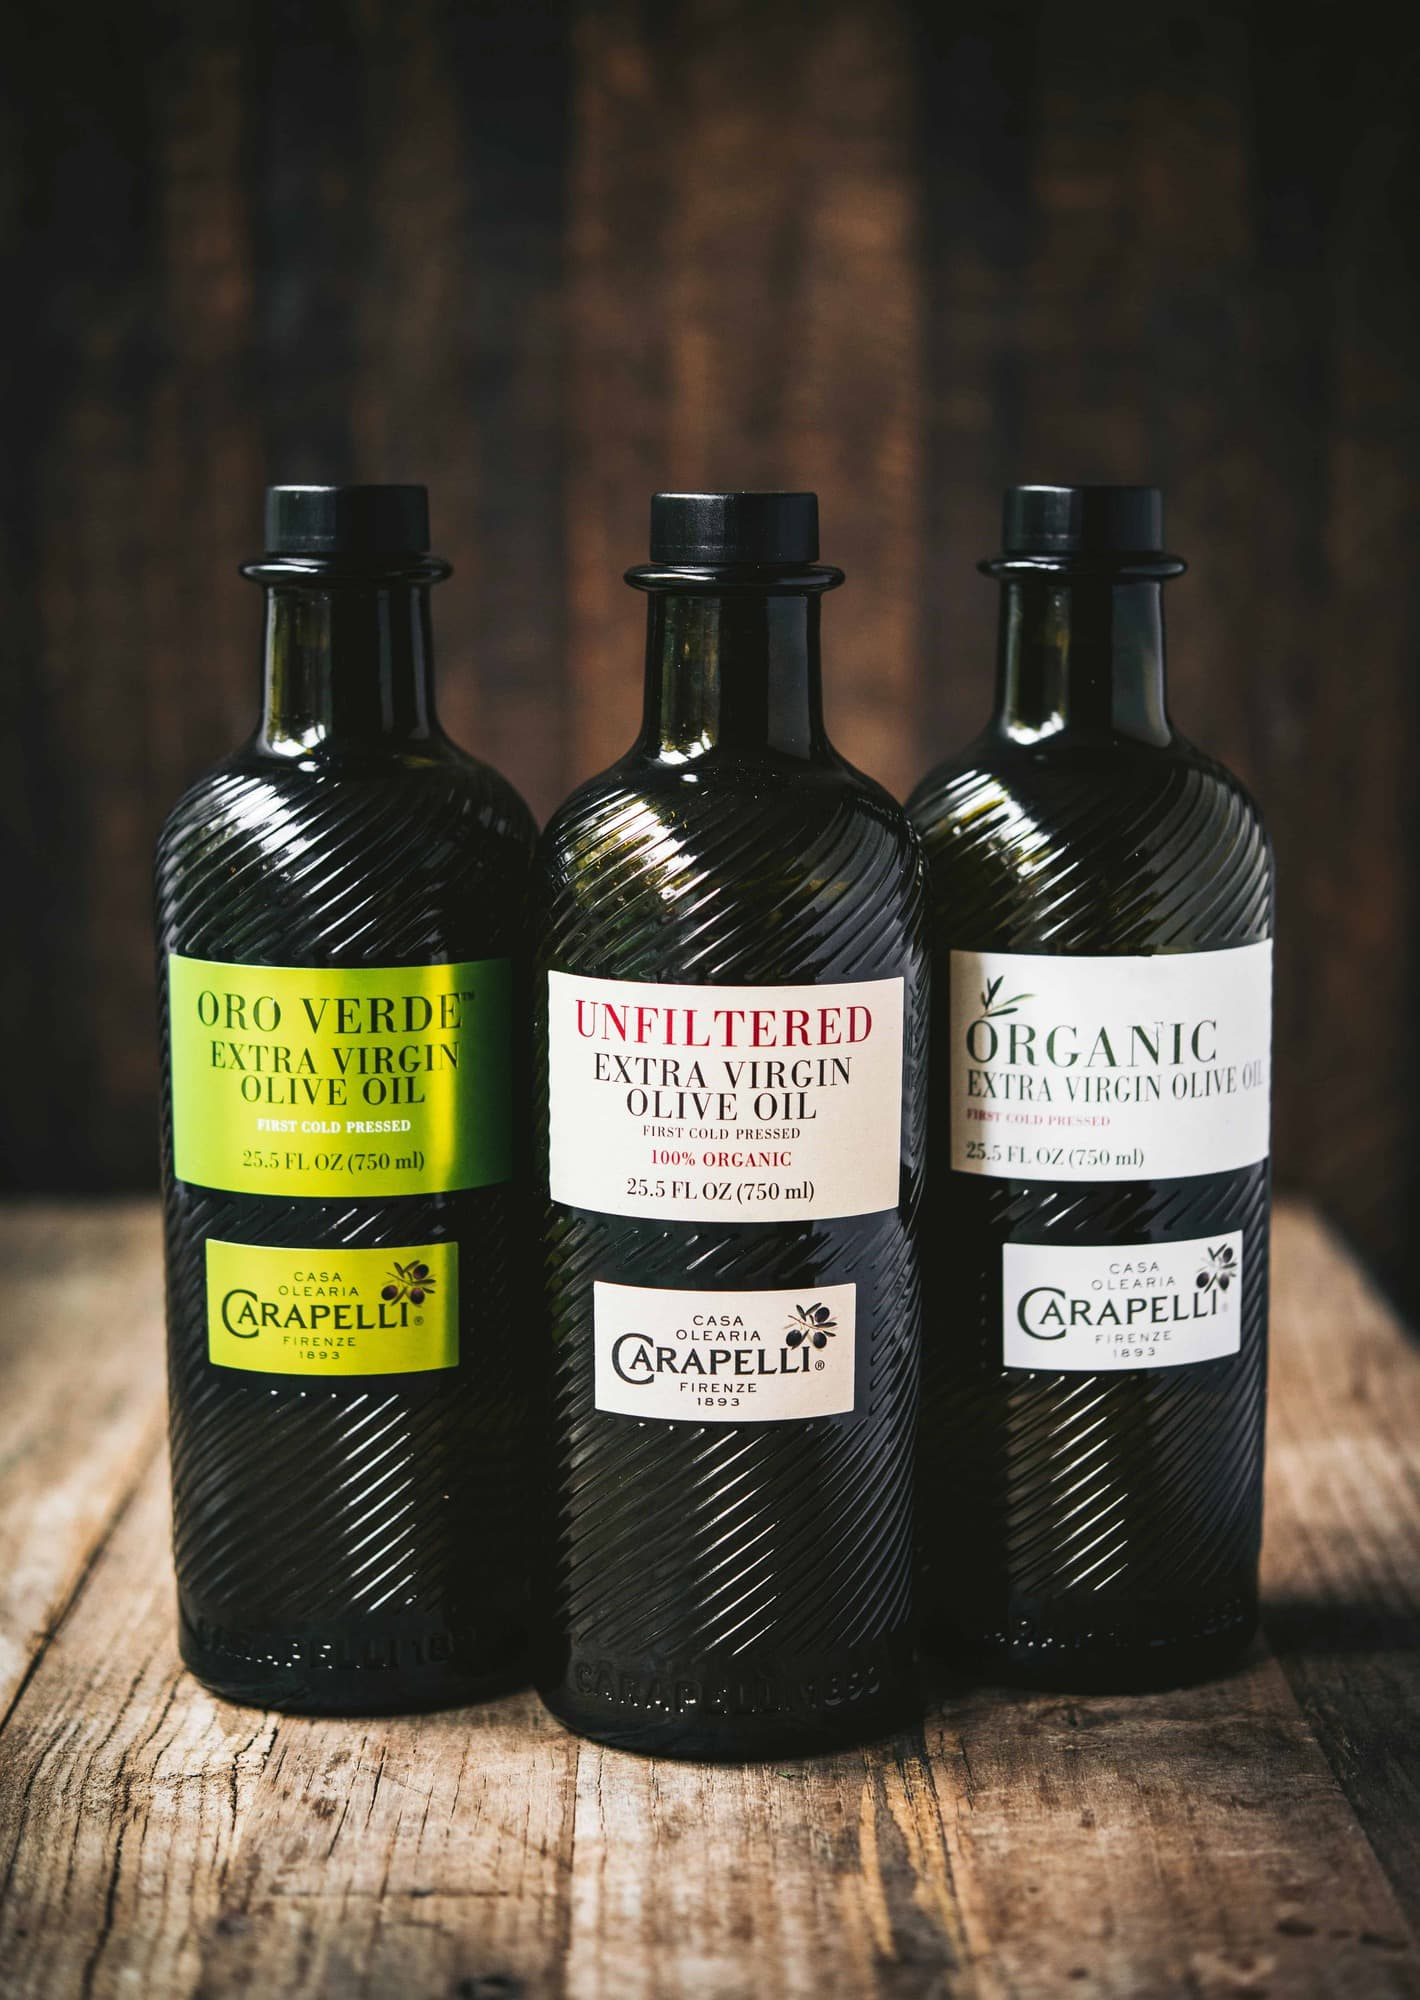 Three bottles of Carapelli Olive Oil on rustic wood background